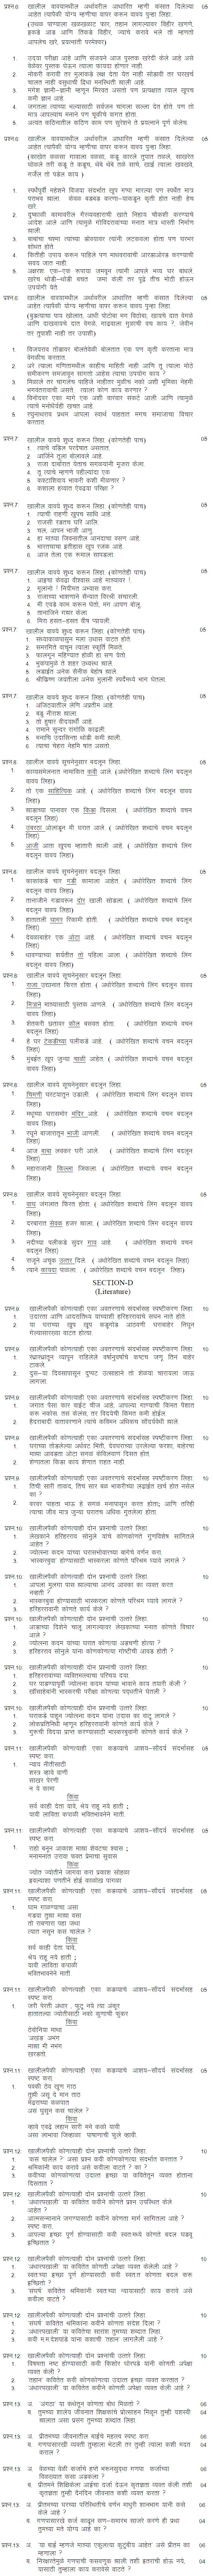 CBSE Class 10 Question Bank - Marathi